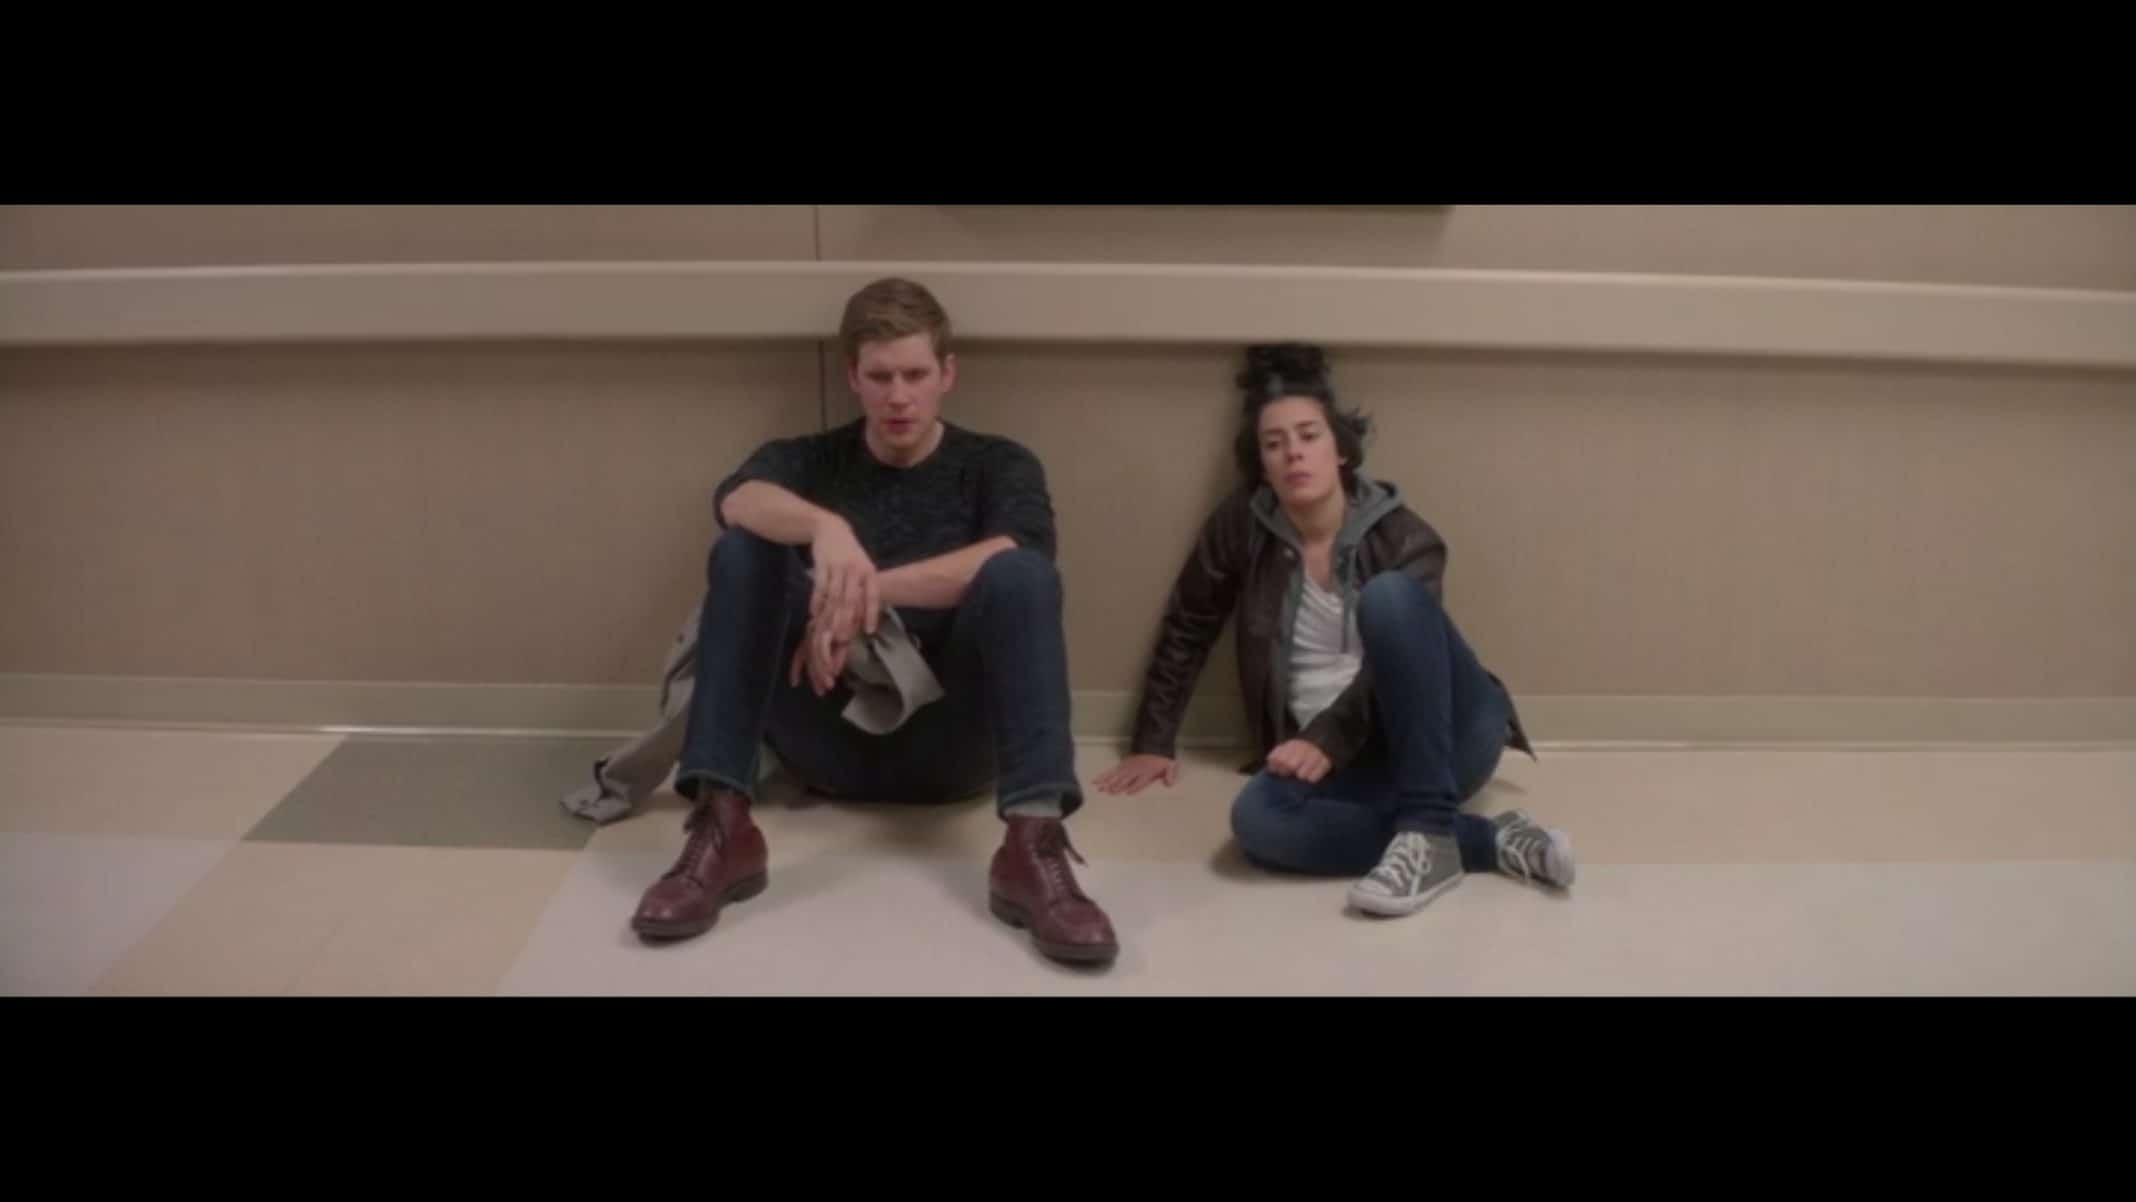 Spencer (Zachary Spicer) and Lex (Roberta Colindrez) sitting on the floor.